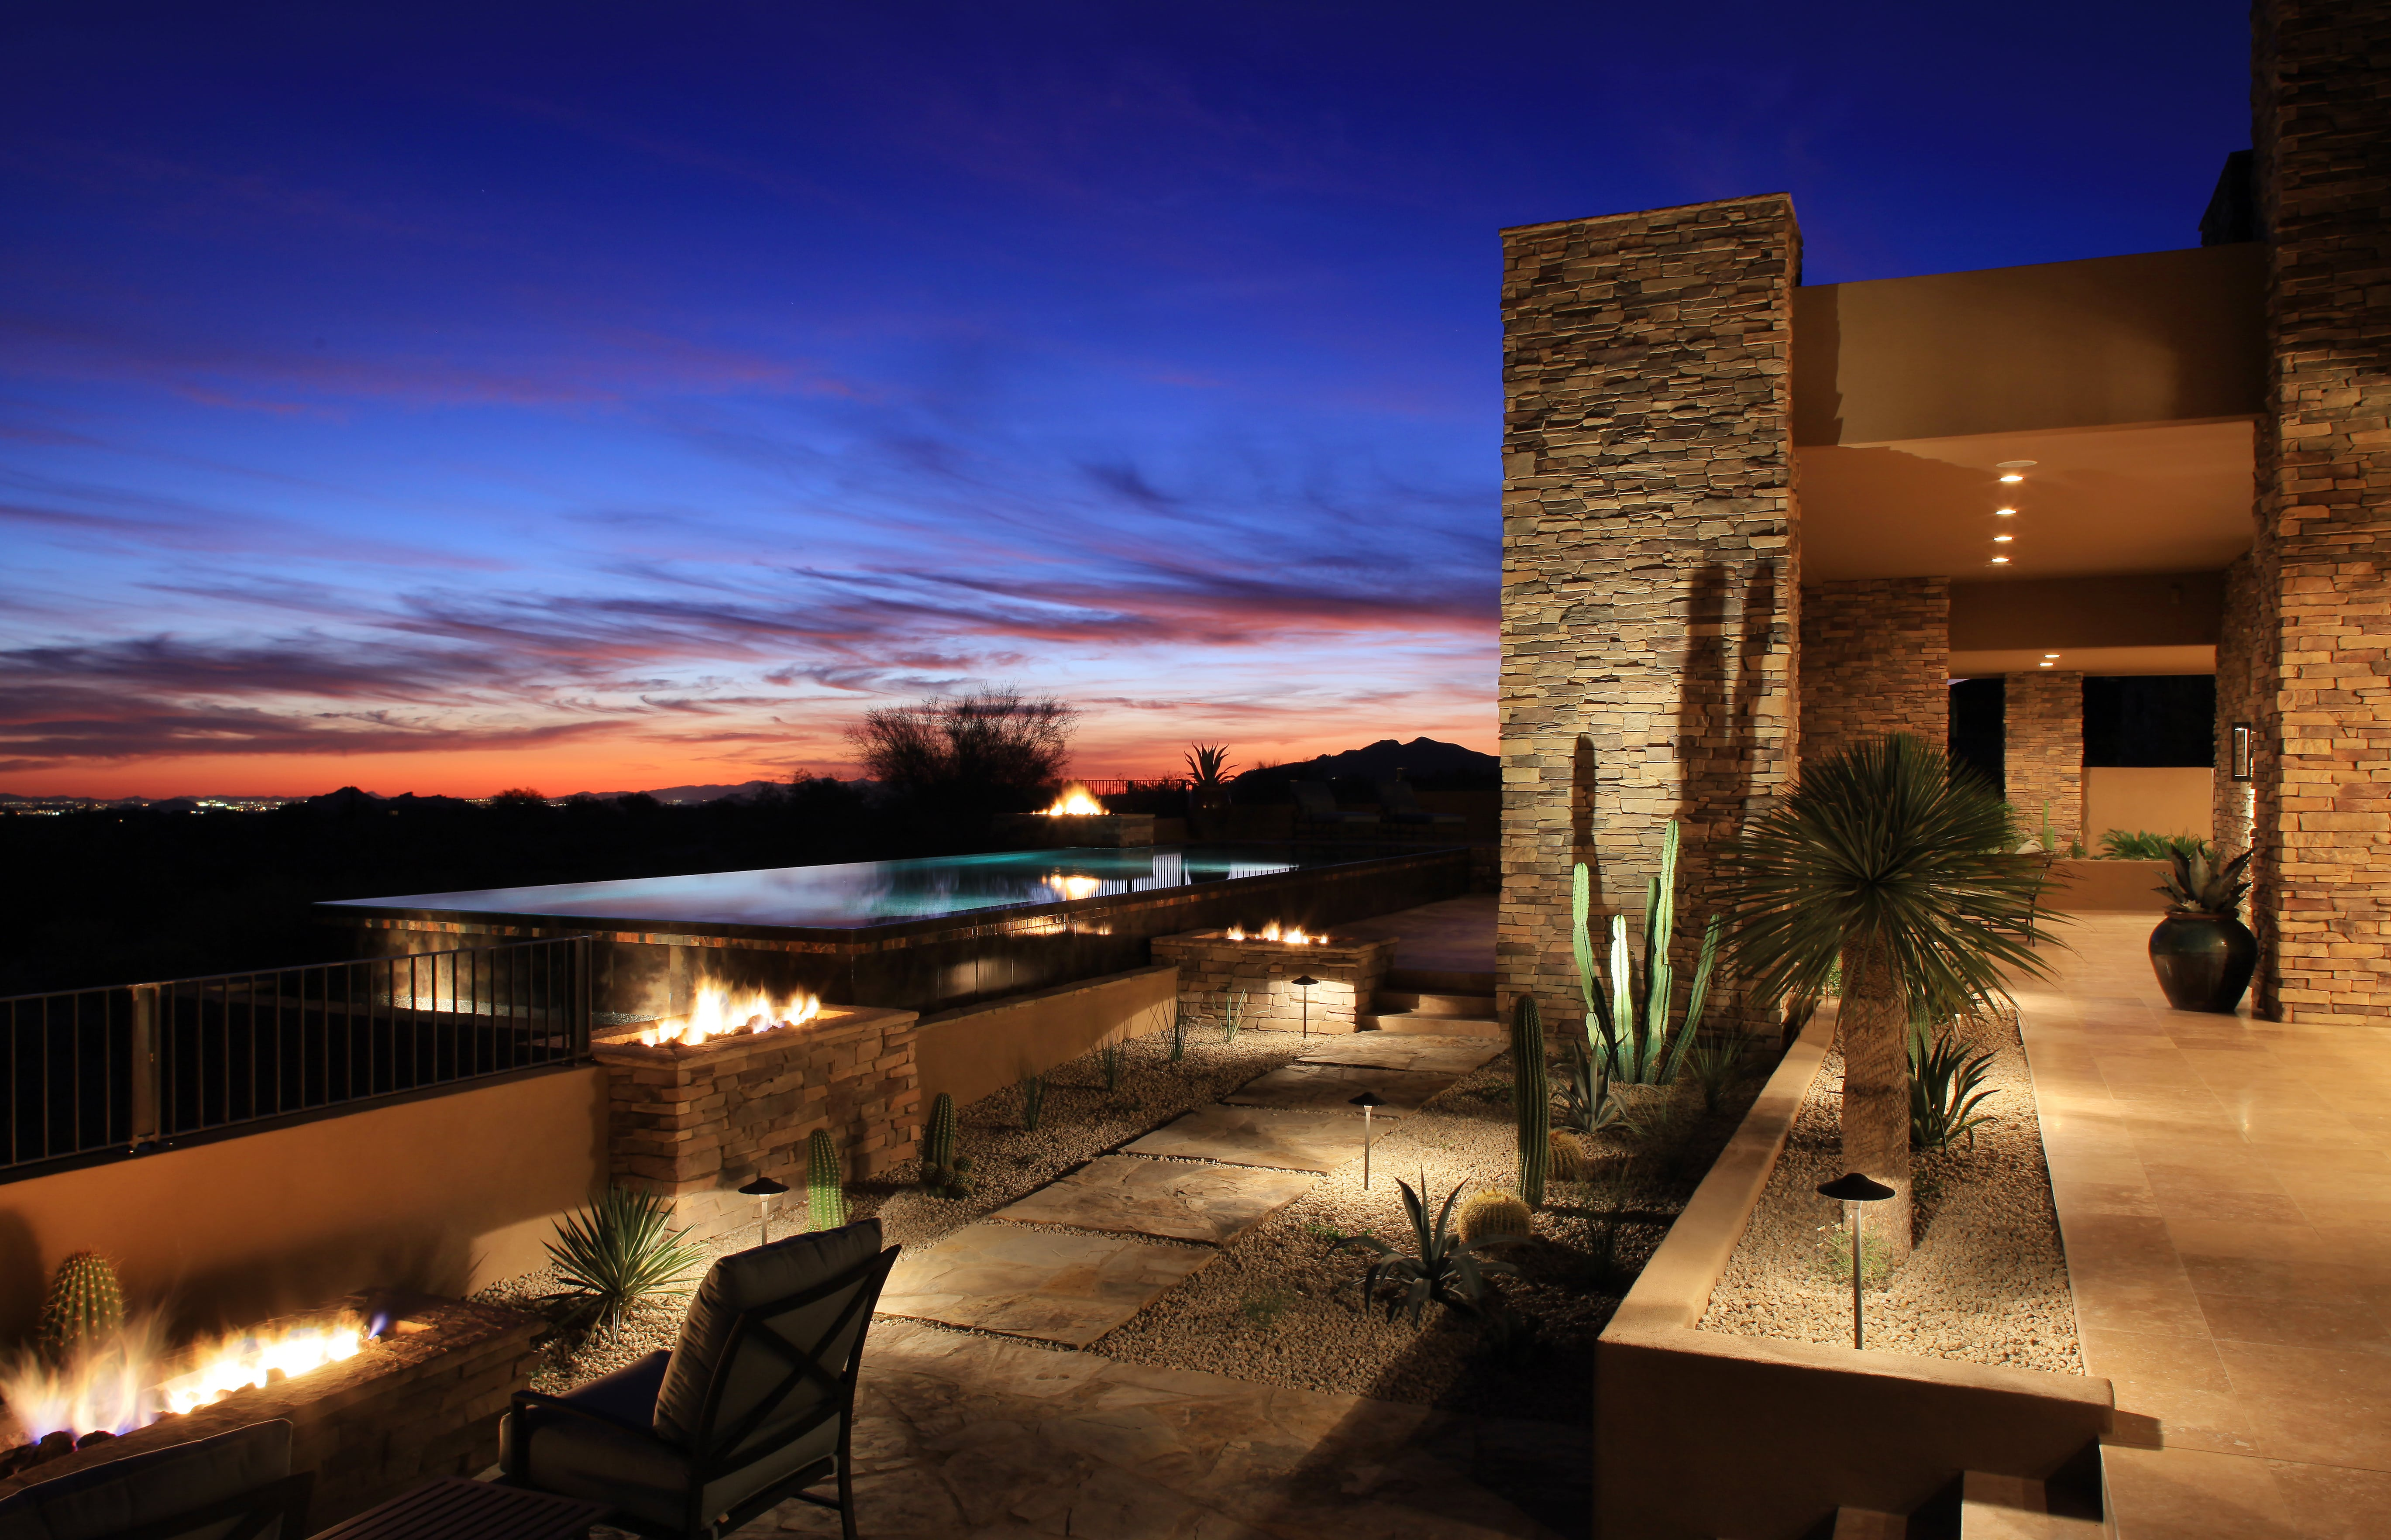 Regency custom homes coupons near me in scottsdale 8coupons for Local home builders near me